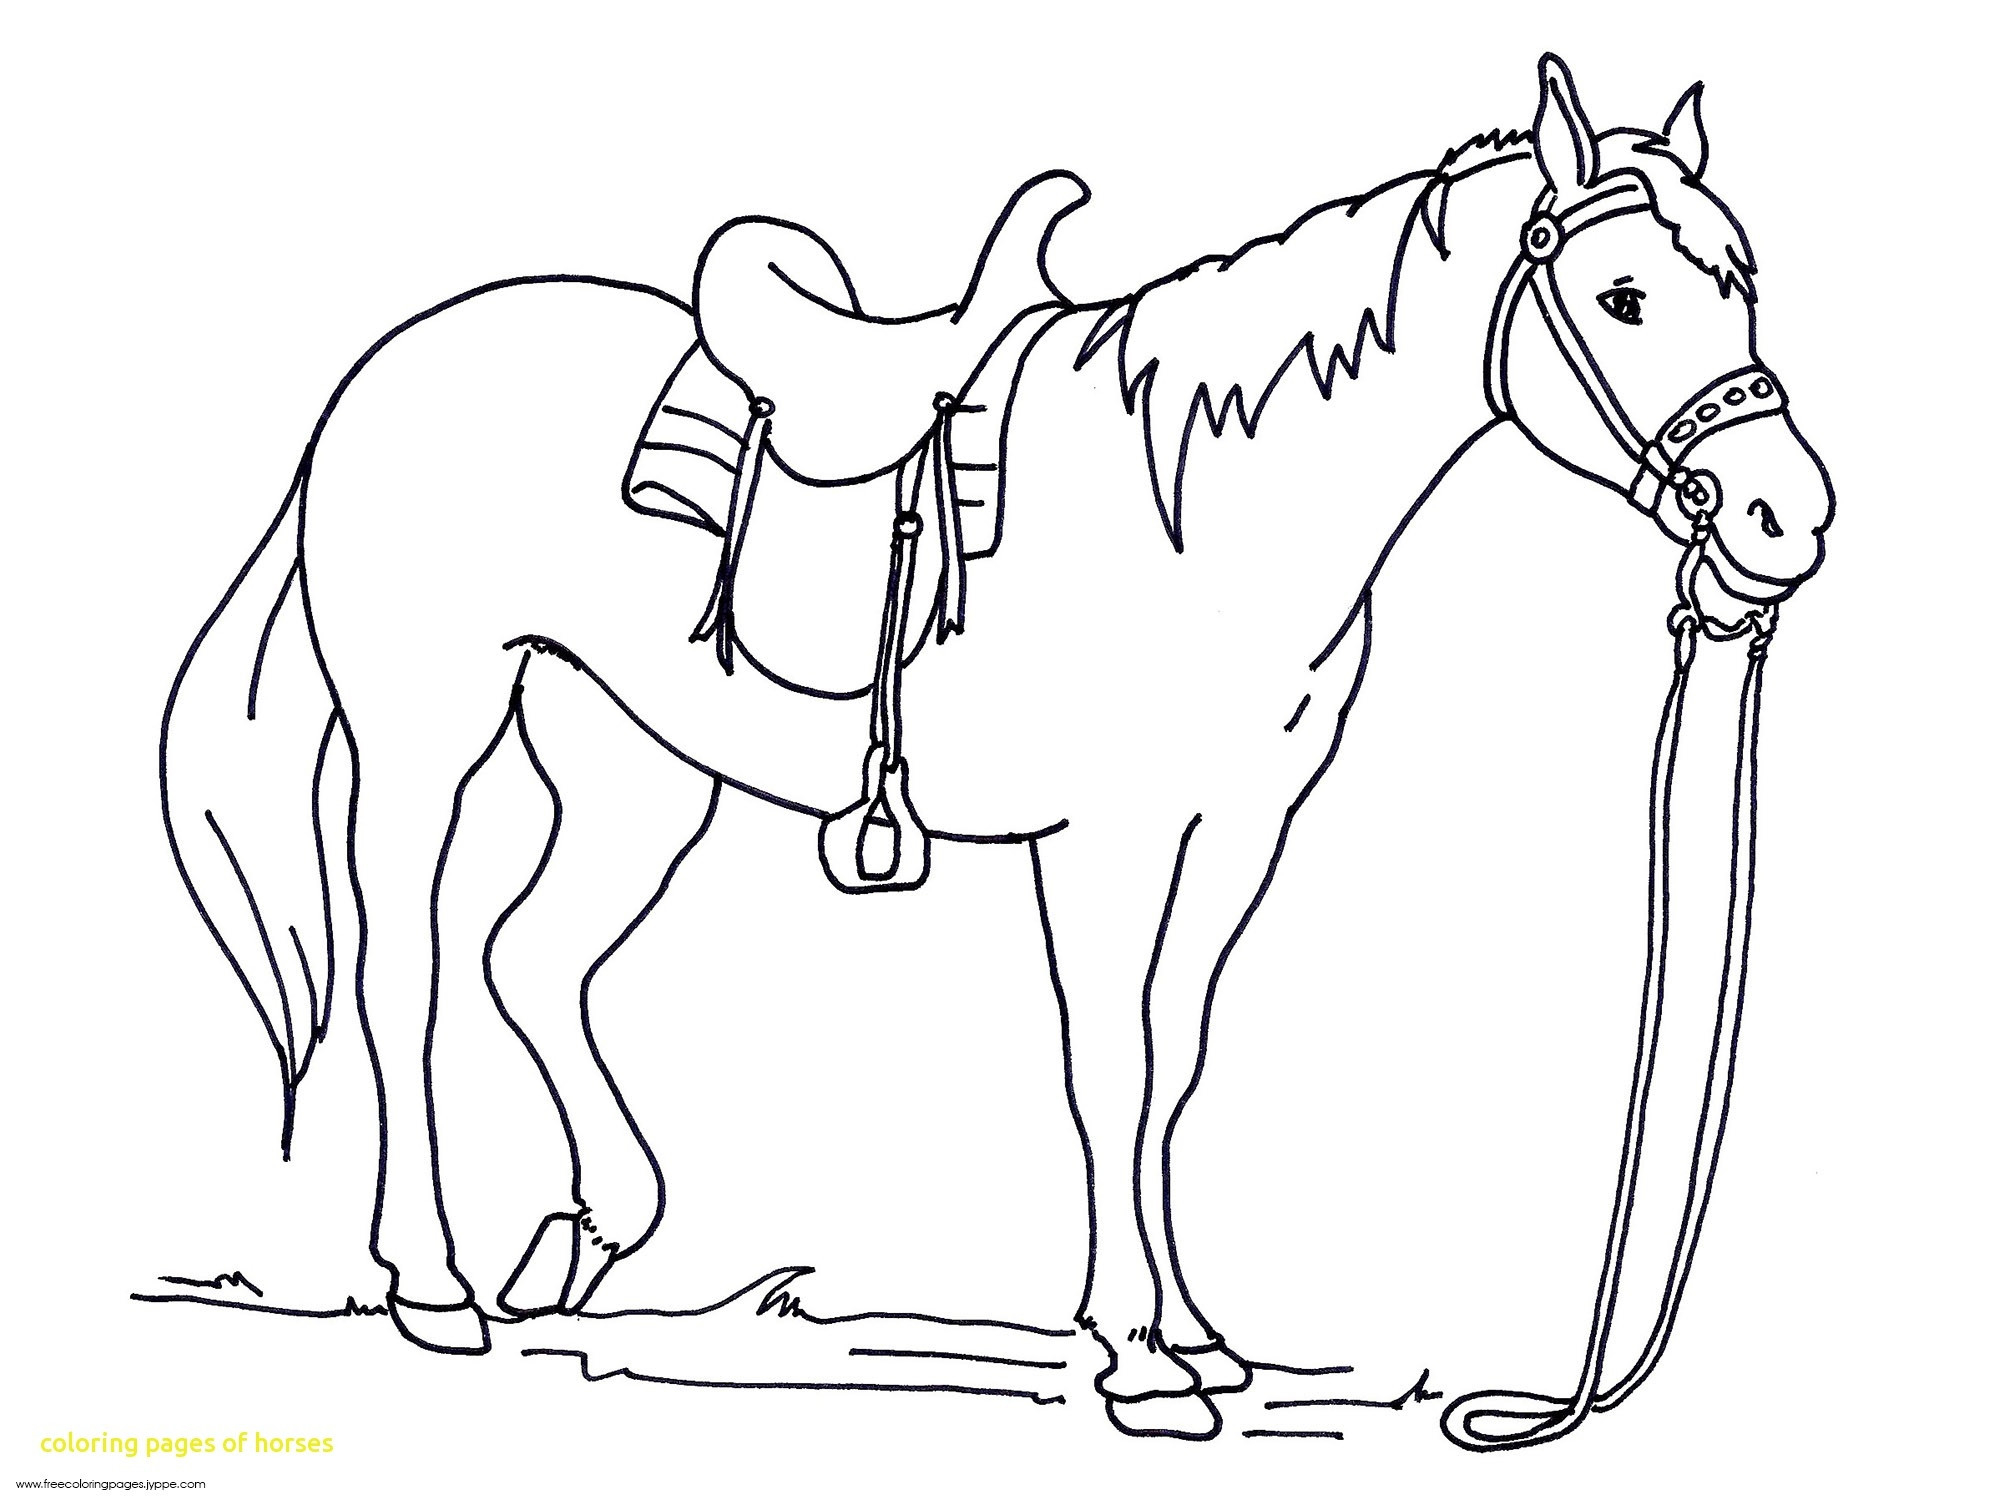 Horse Coloring Pages Printable 1c - To print for your project